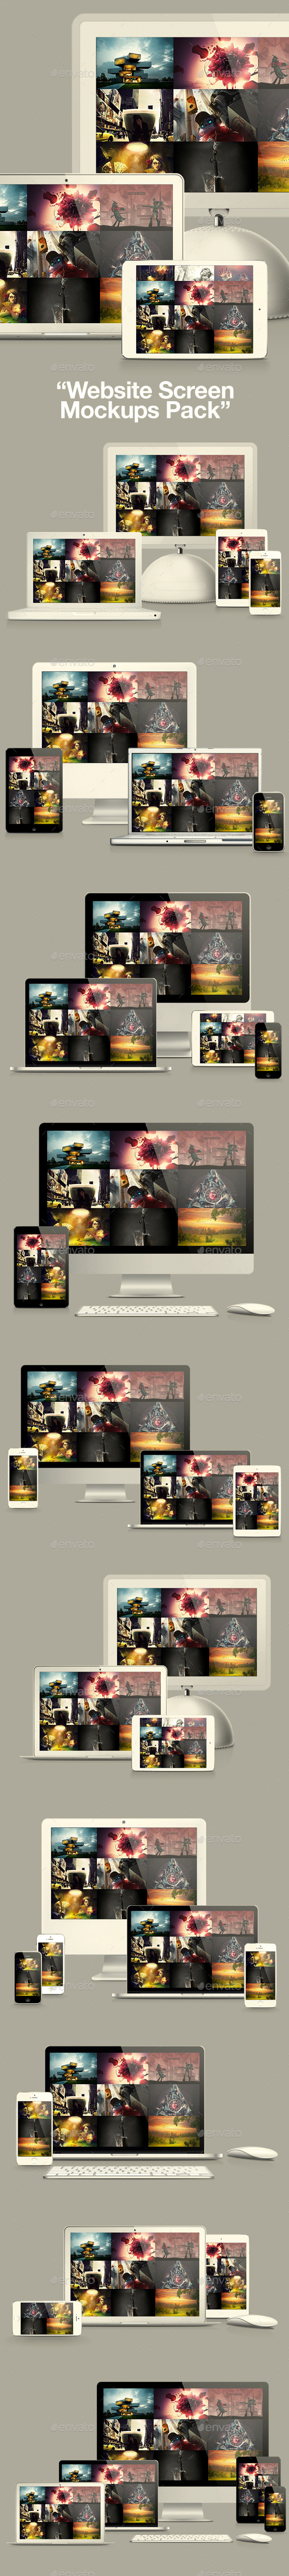 Website Screen Mockups Pack - Website Displays